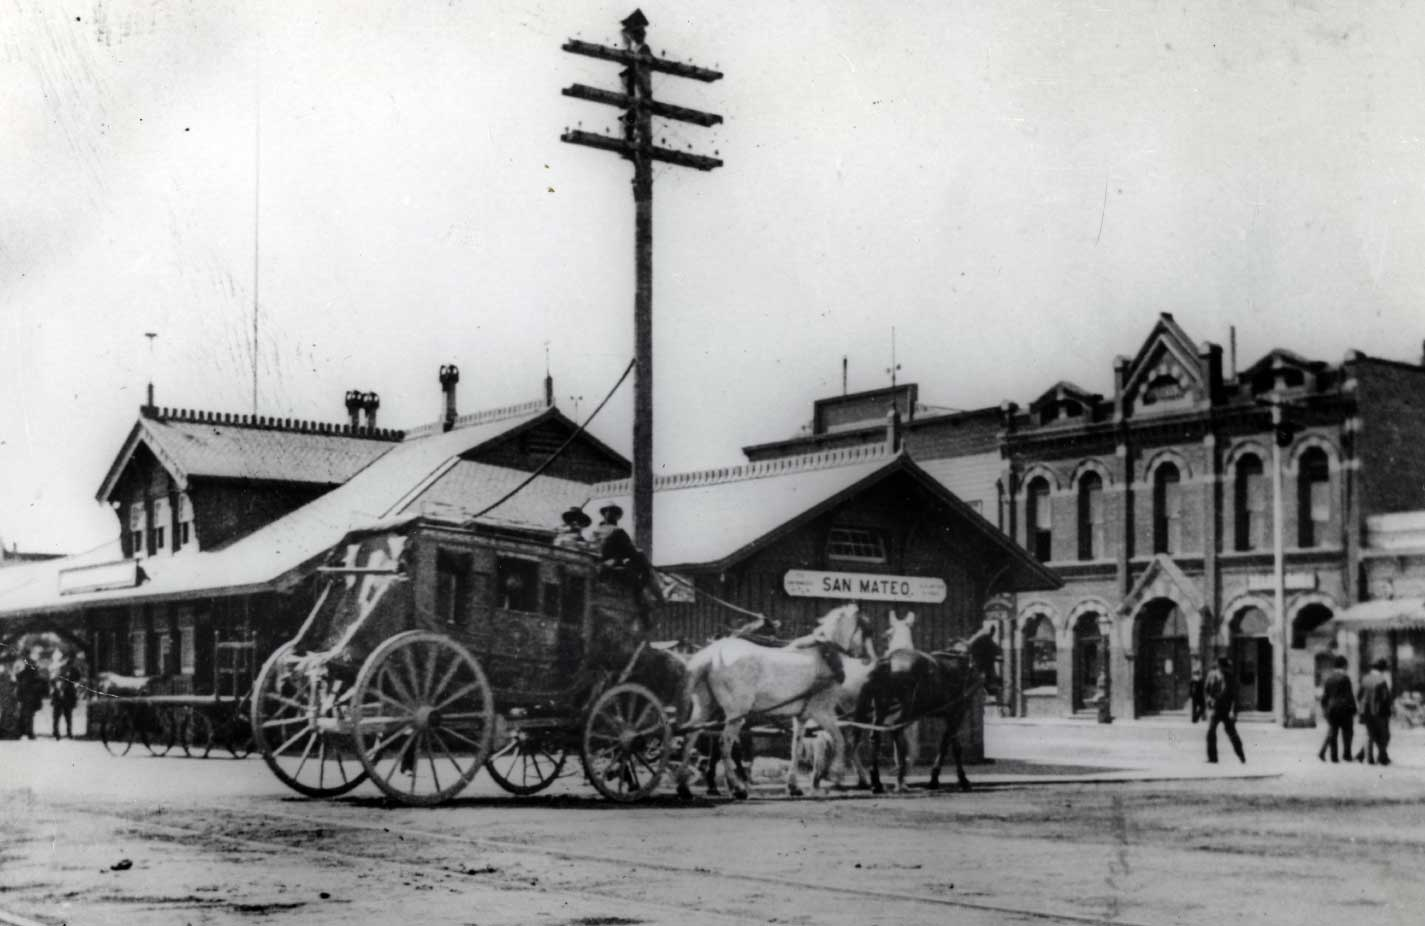 Archival photo of Stagecoach at San Mateo Train Station